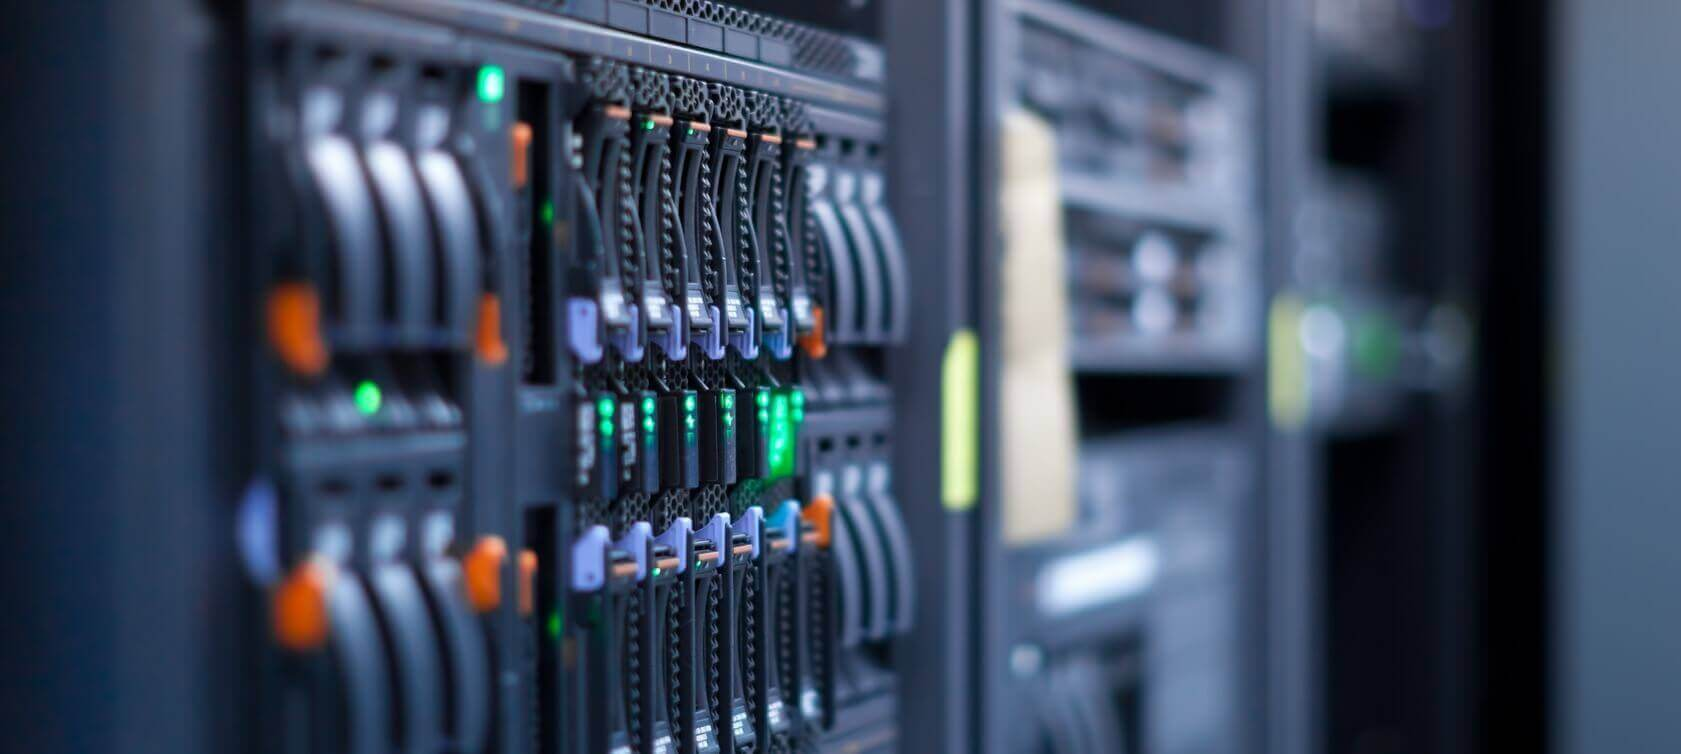 Dedicated Hosting: Managed or Unmanaged?